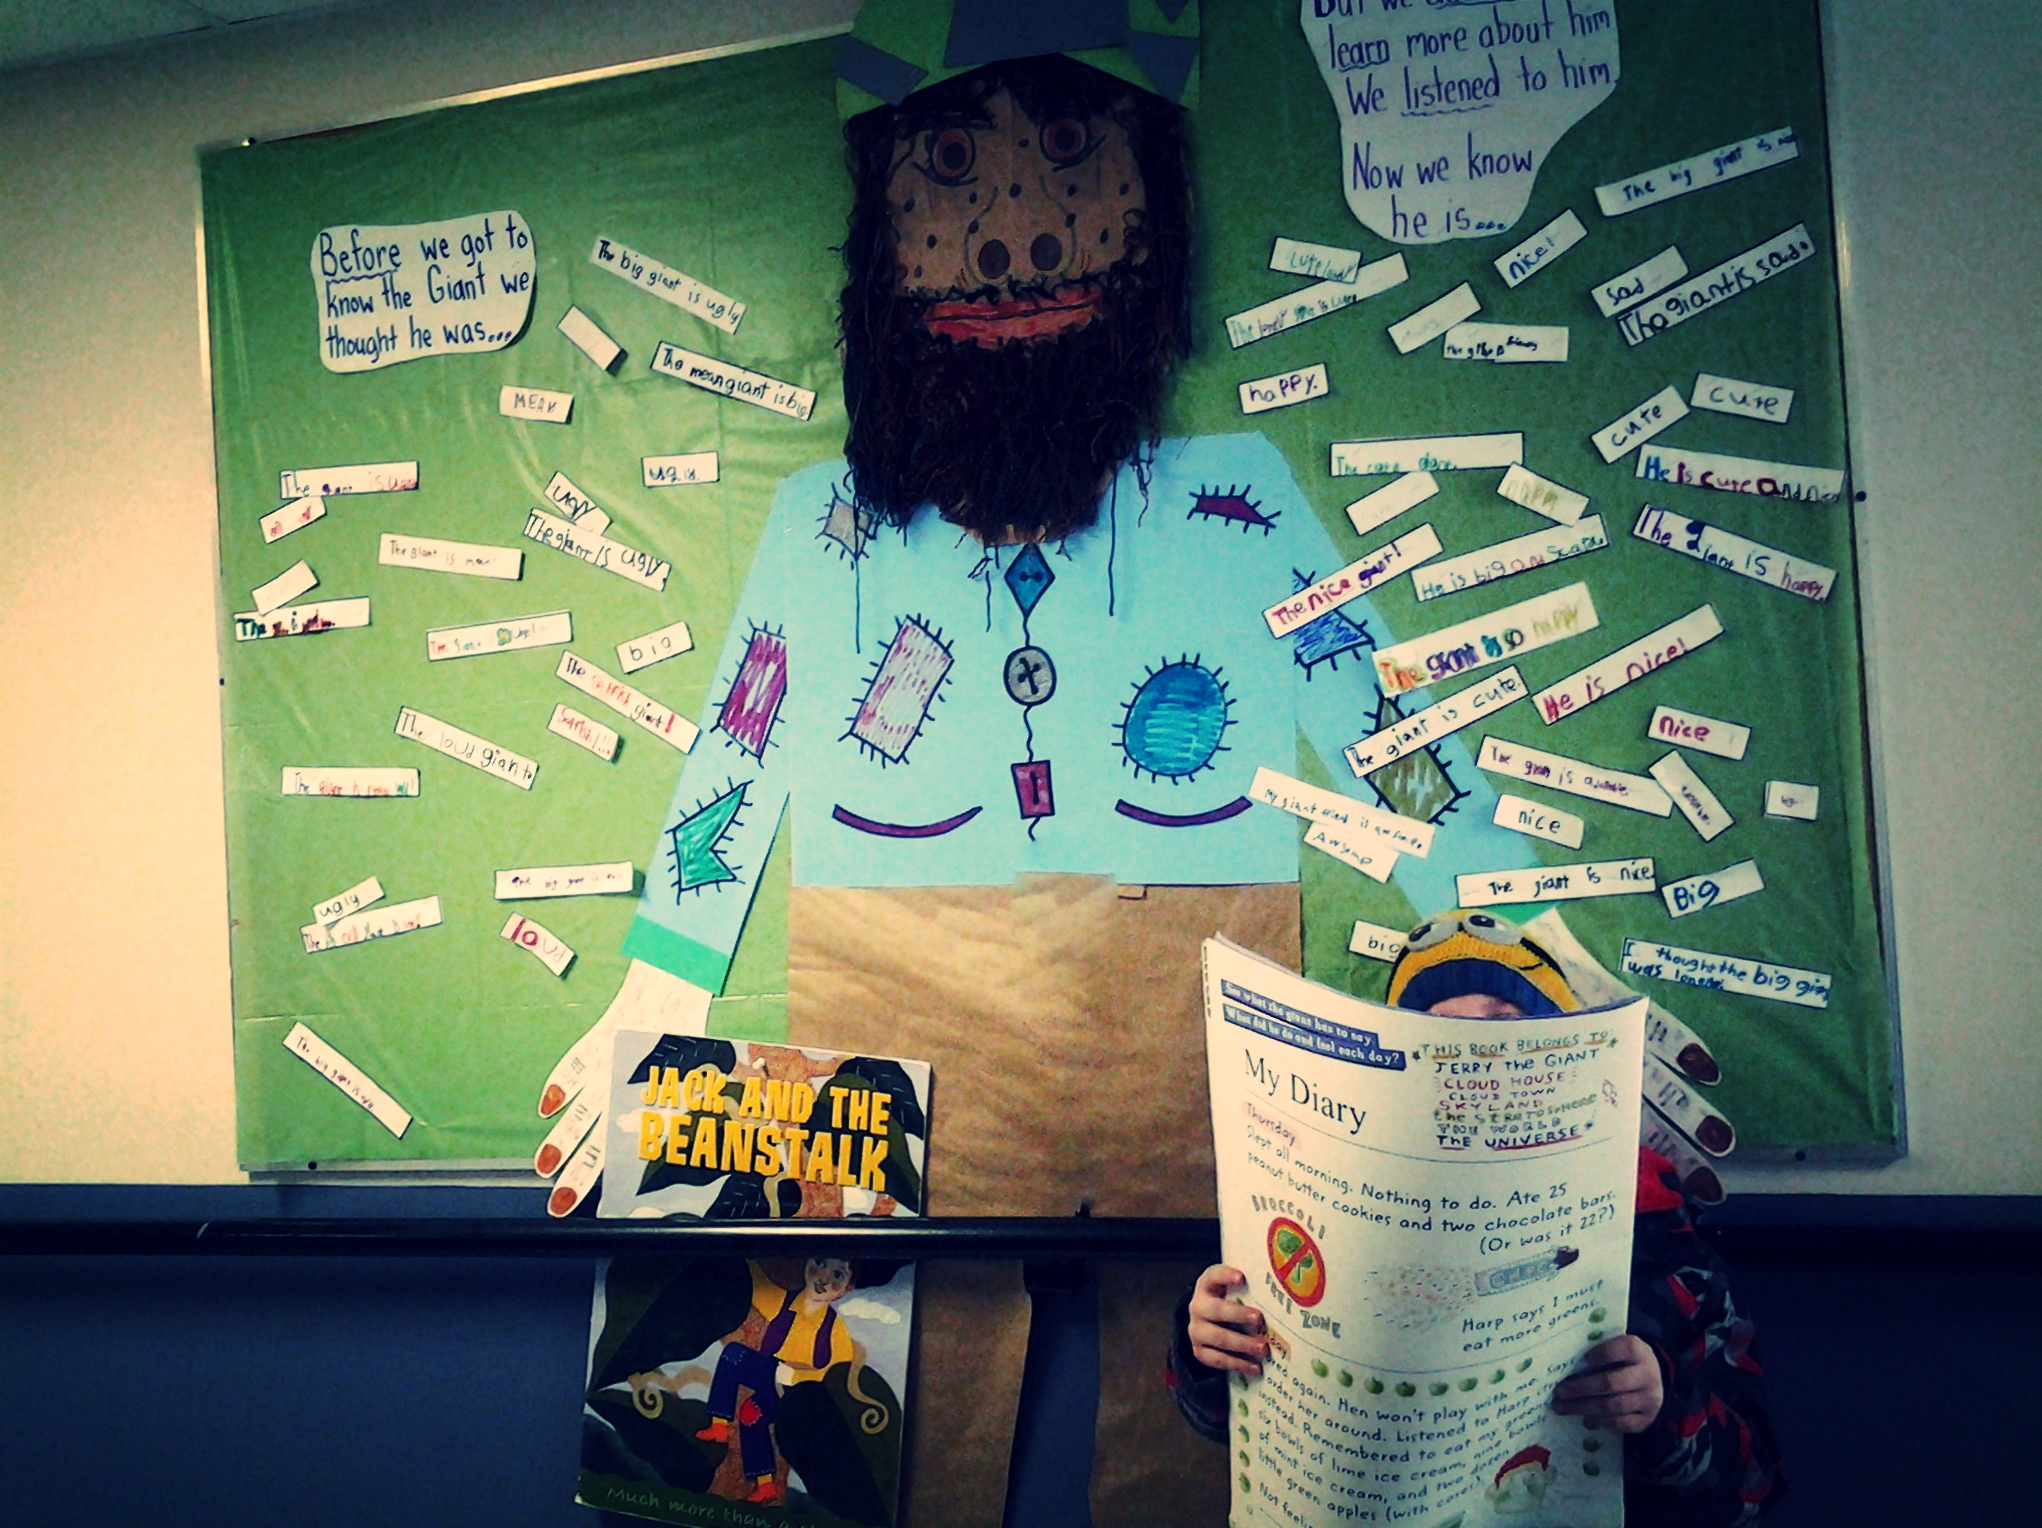 """The traditional tale of Jack and the Beanstalk was used to demonstrate how easily we judge others by their appearance and behavior. We are all guilty of making assumptions based on what we see and many times these assumptions are wrong. Students read the tale and responded to the question, """"What do you think of the giant?"""" All responses were negative because the story is told from Jack's point of view. Then we looked at the giant's personal diary and students learned how they had misunderstood him.  We never know for sure what motivates other people to behave the way they do. Nor can we ever truly understand a person's heart unless we take the time to know them. Jerry the Giant in Jack and the Beanstalk is a good example."""